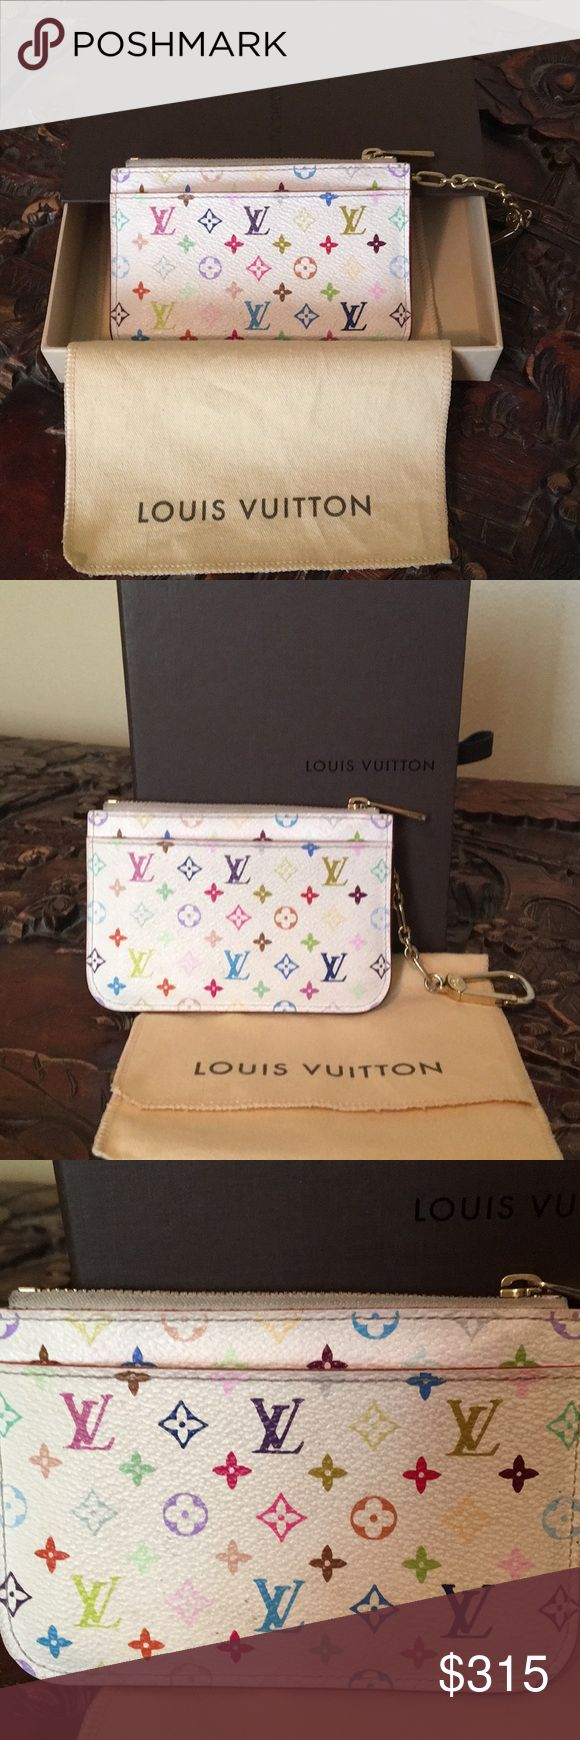 Louis Vuitton Multicolor Cardholder Louis Vuitton multicolored card holder  Retired Collector's piece.   Preloved but minimal signs of wear.  Zipper in good working order. Can clip to inside of your bag. I clip it to my jeans belt loop and slide in back pocket when I dont want to take my large bag. Will fit ID, credit cards and cash. Also has an outside pocket for additional items.   Item Code is CA4140  Will include dust bag and box  Please do not ask what my lowest price is. Use the offer…